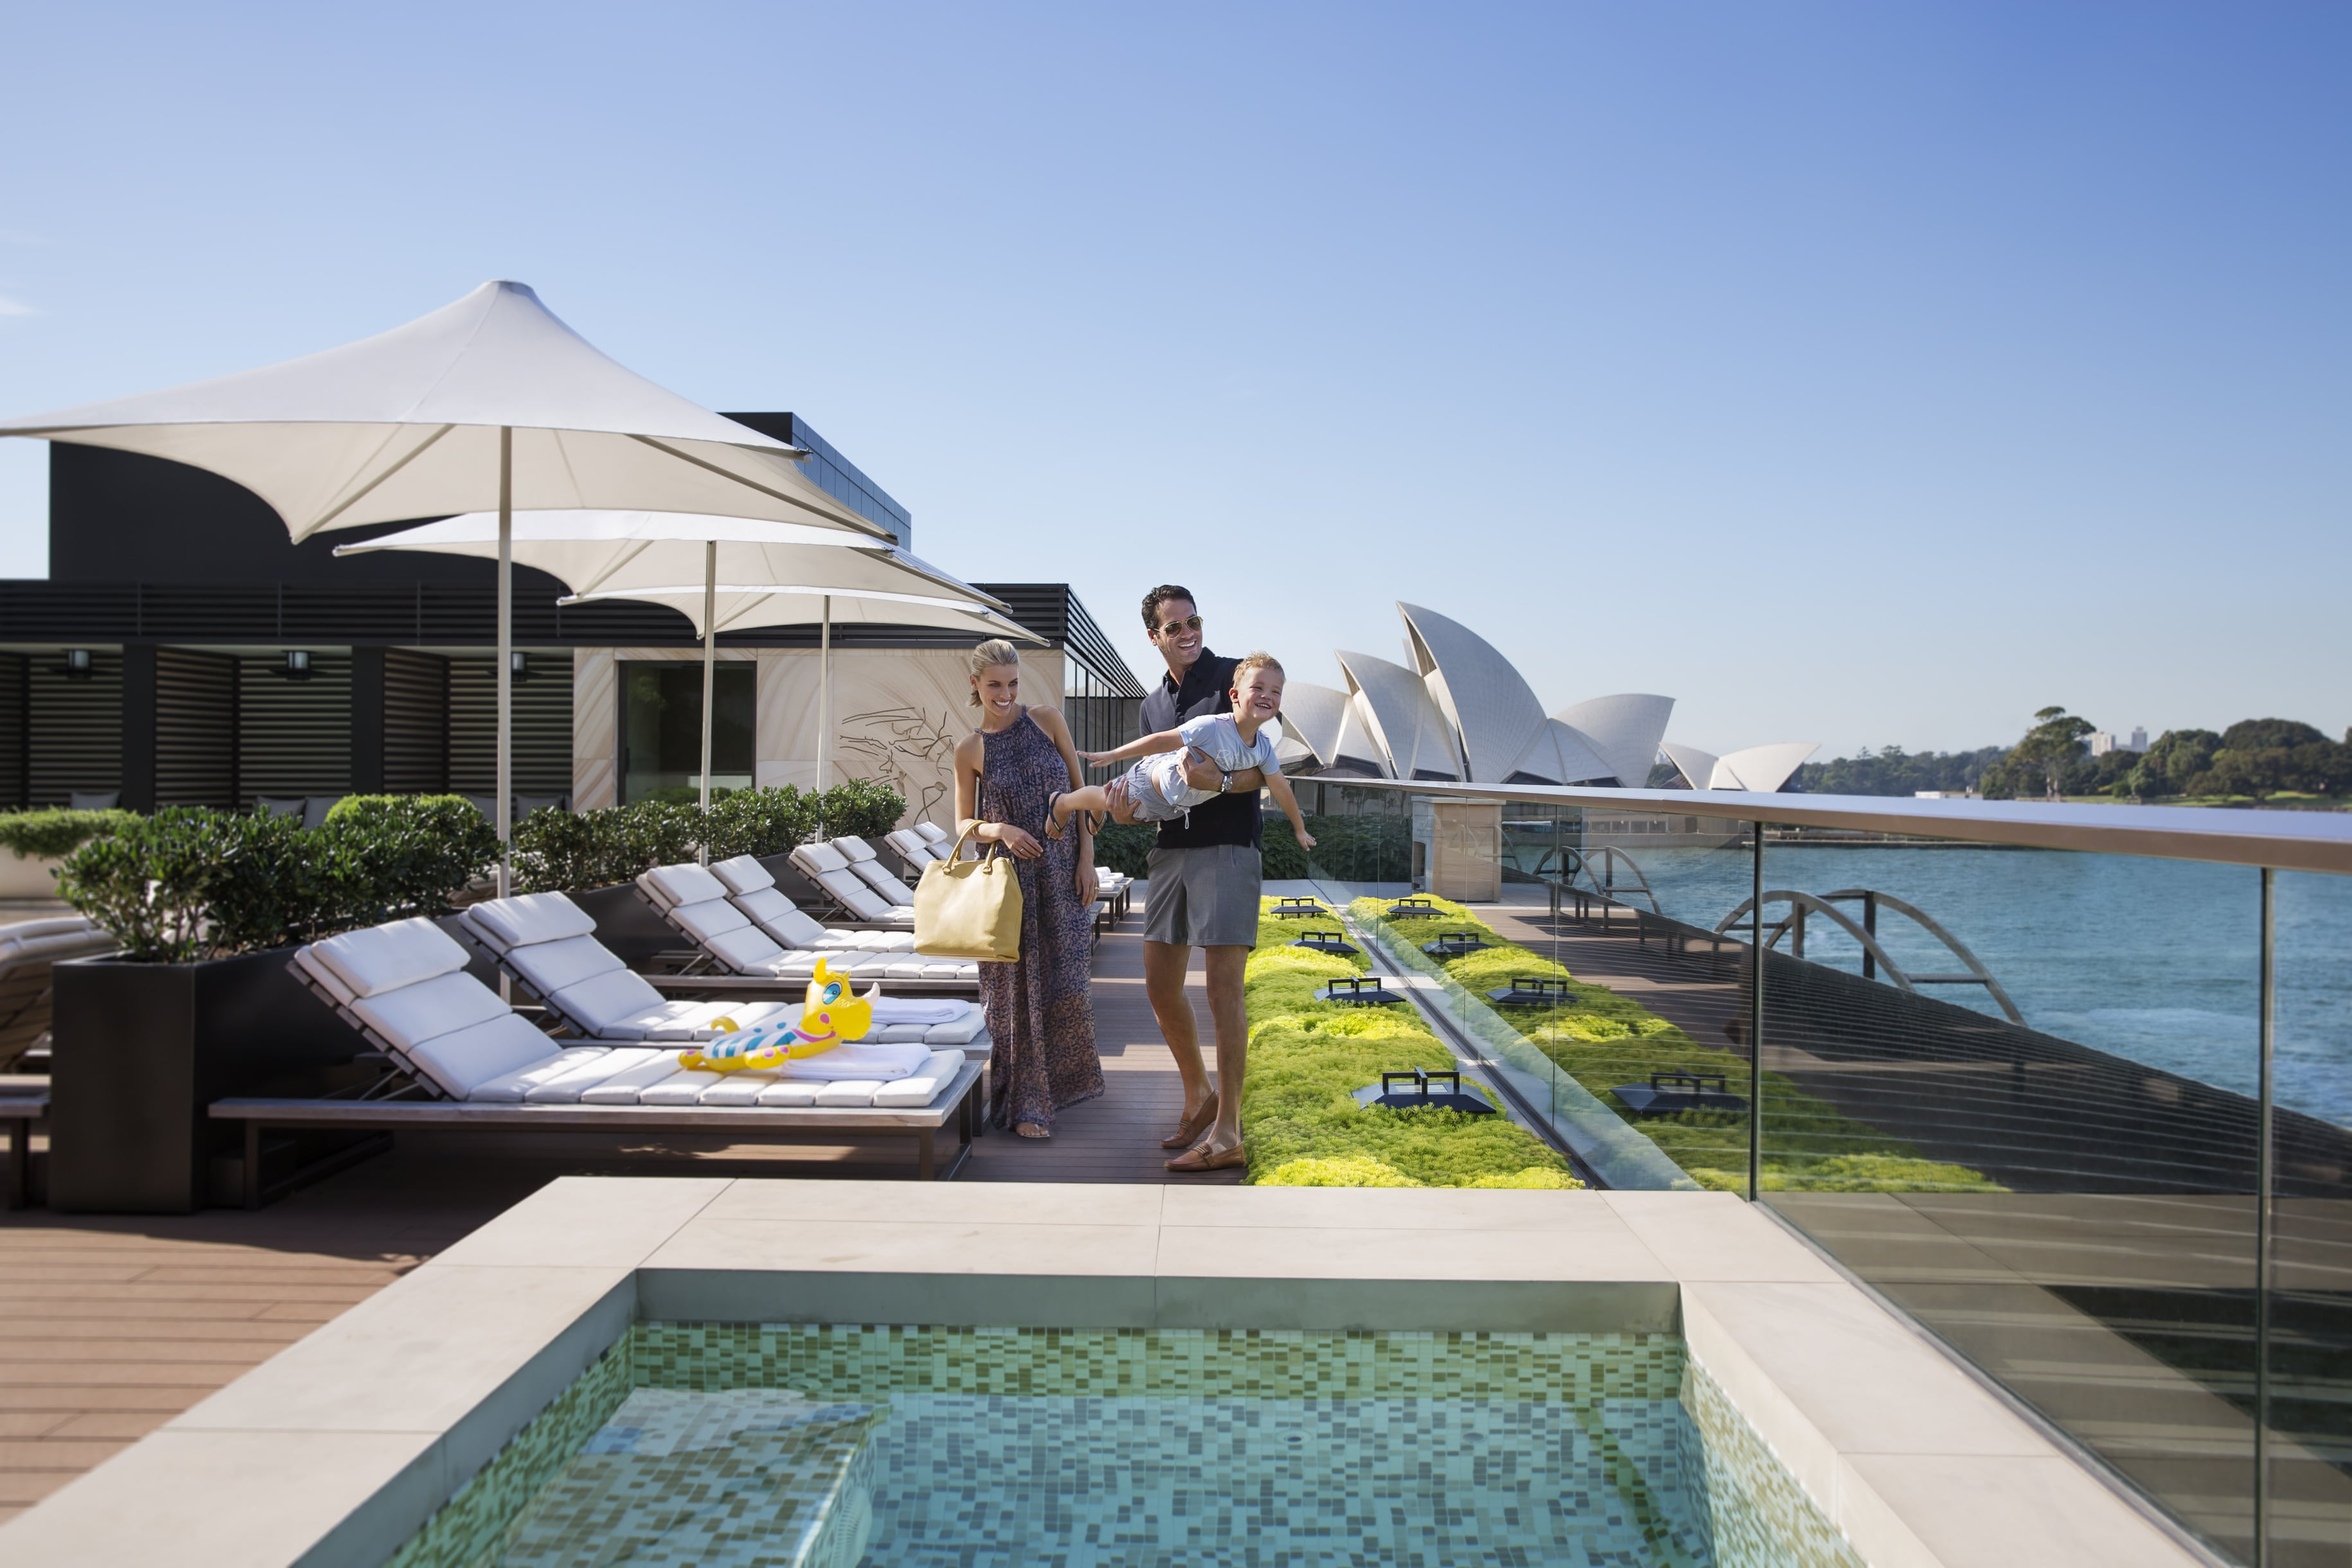 Park Hyatt's rooftop swimming pool with sweeping views of Sydney Harbour